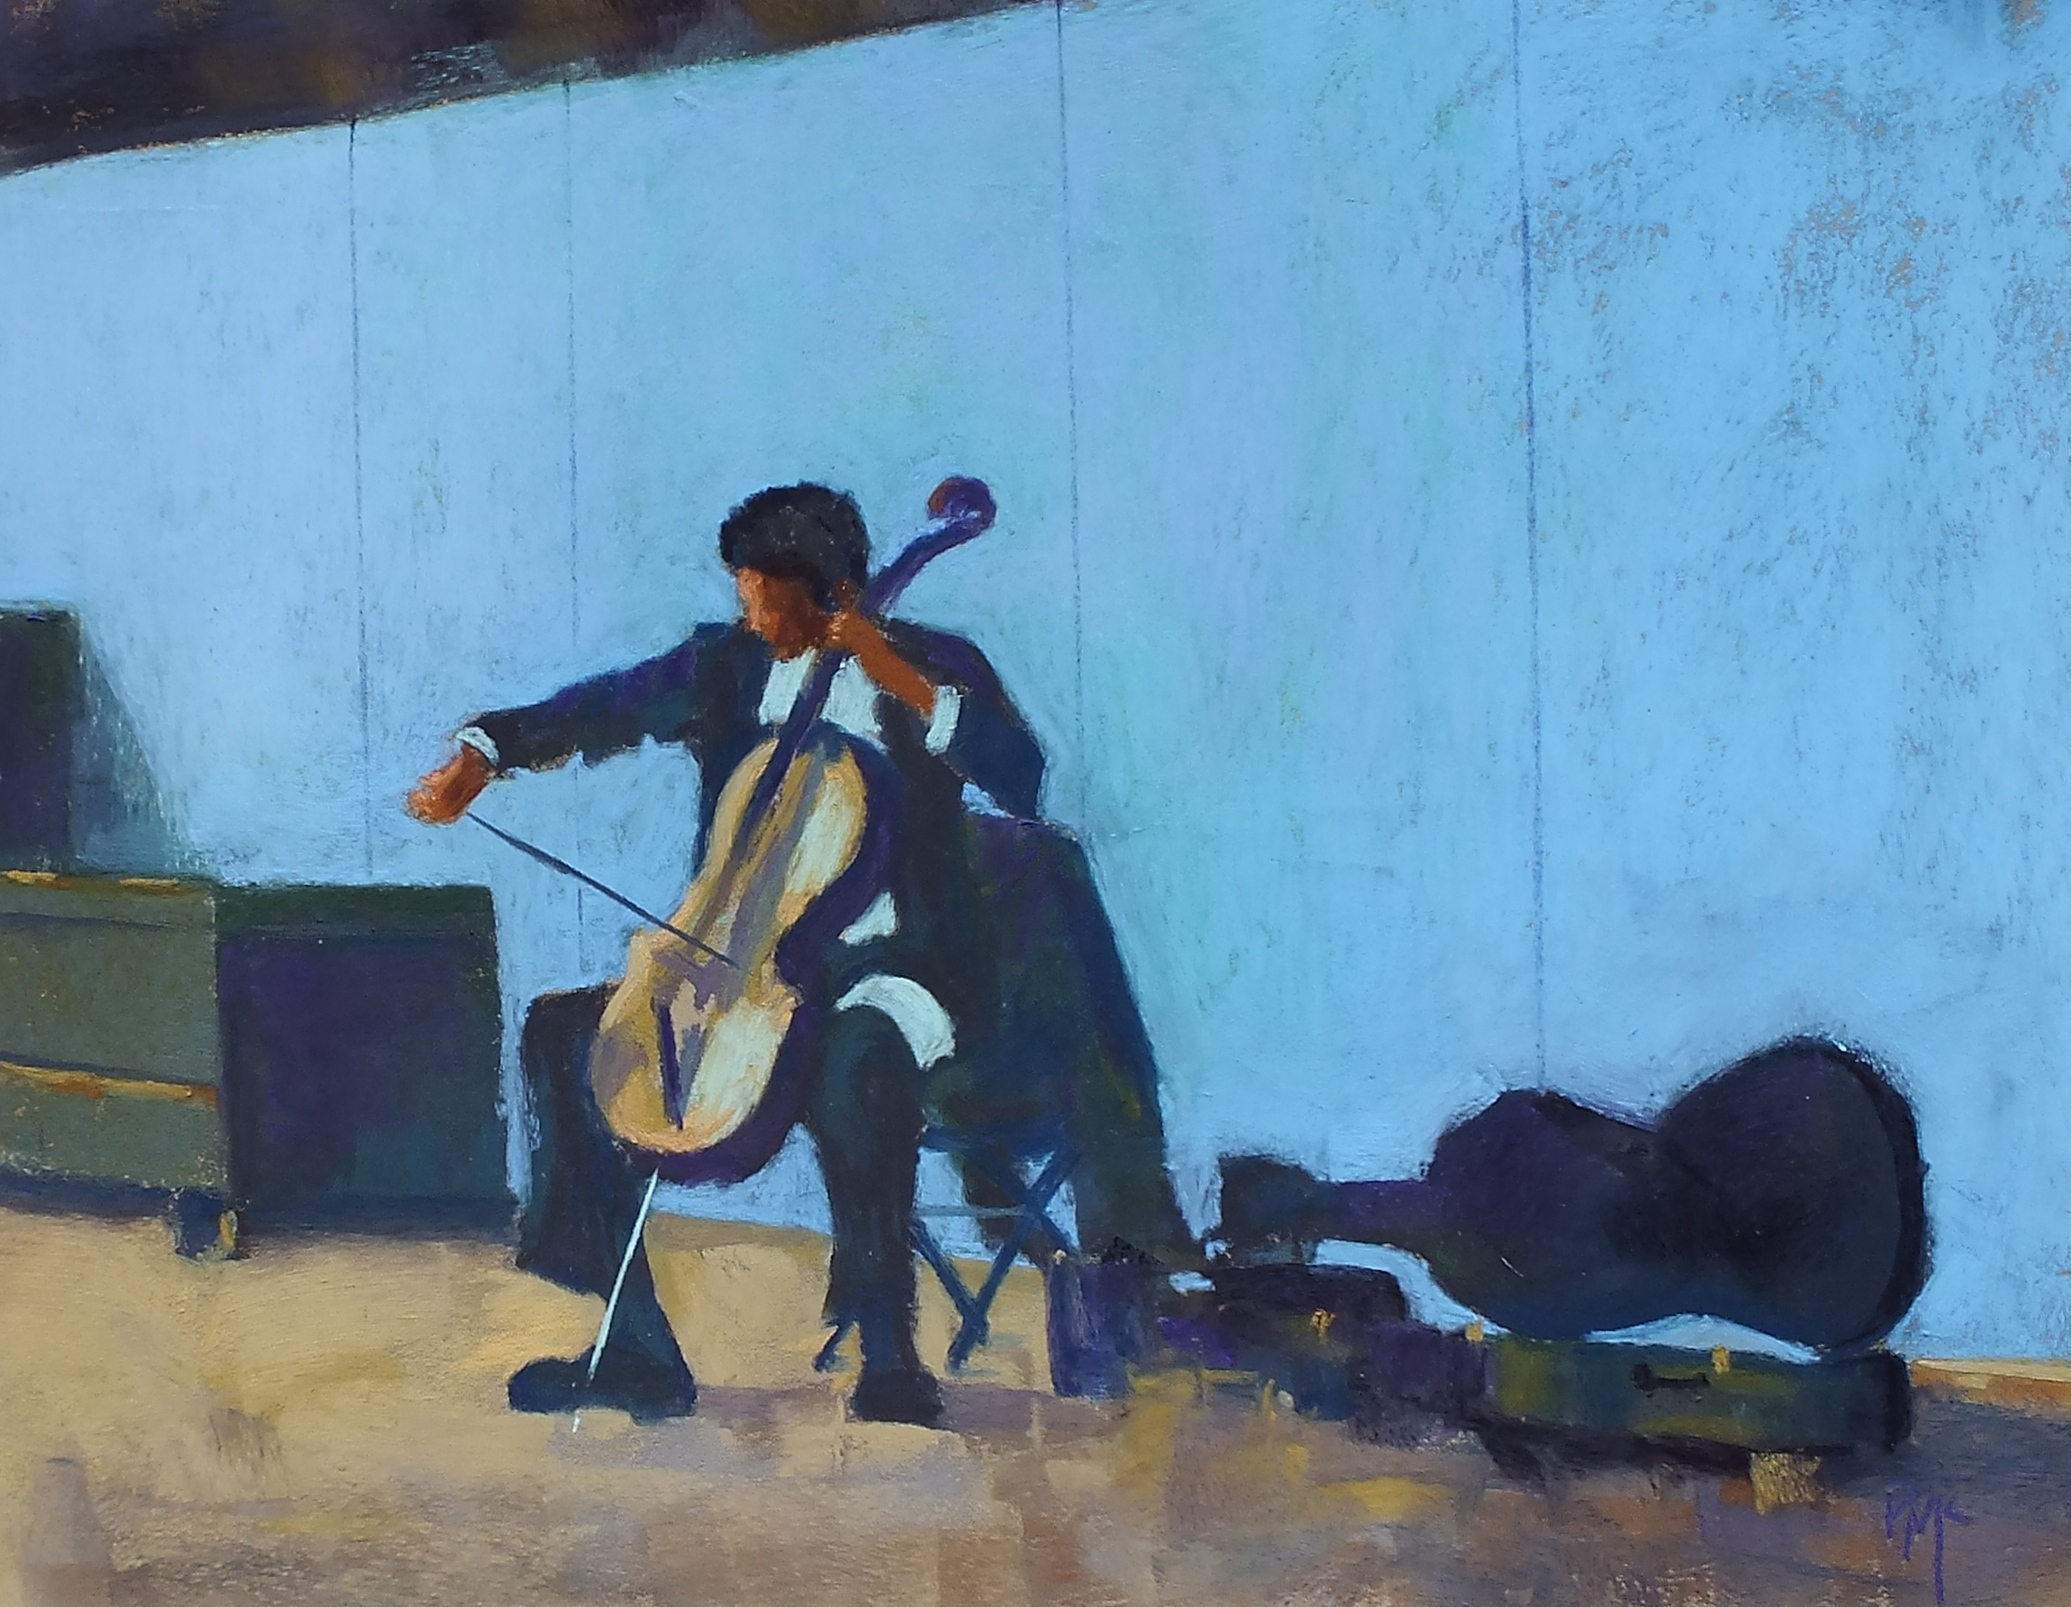 The Cello Player on the Highline